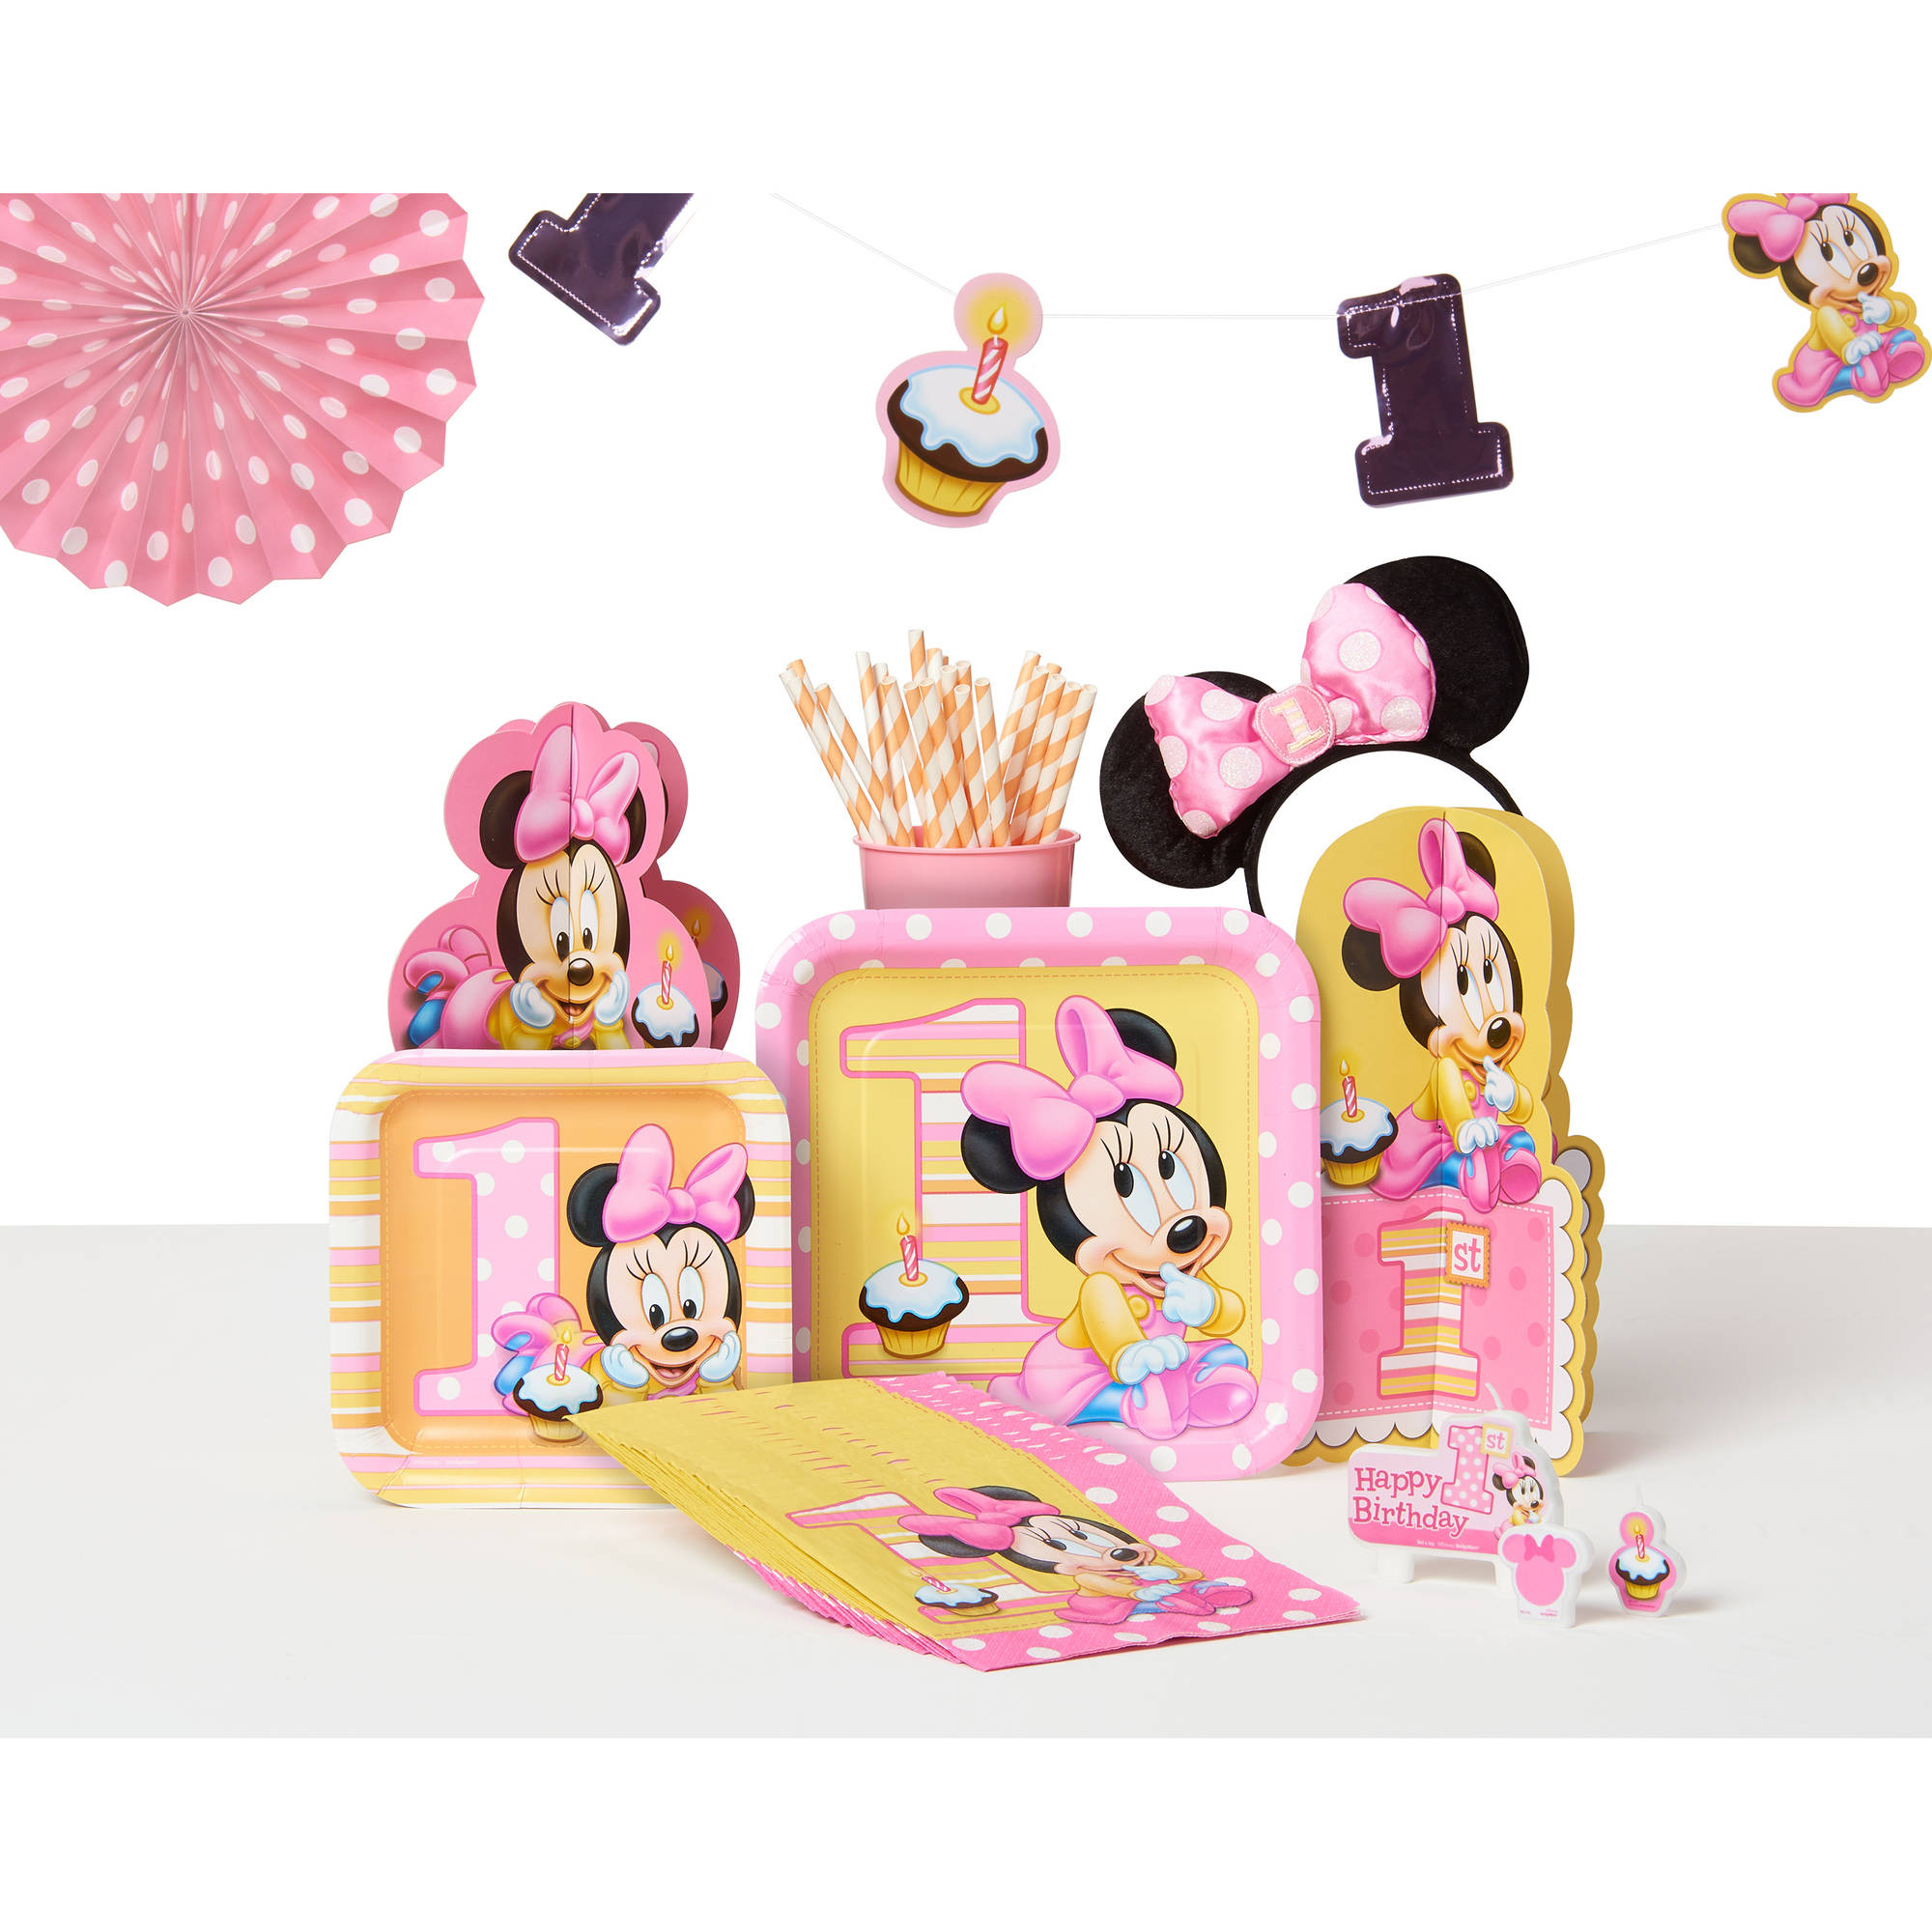 Baby Minnie Mouse Hanging String Decorations First Birthday Party Supplies 6ct Party Supplies Patterer Party Decorations